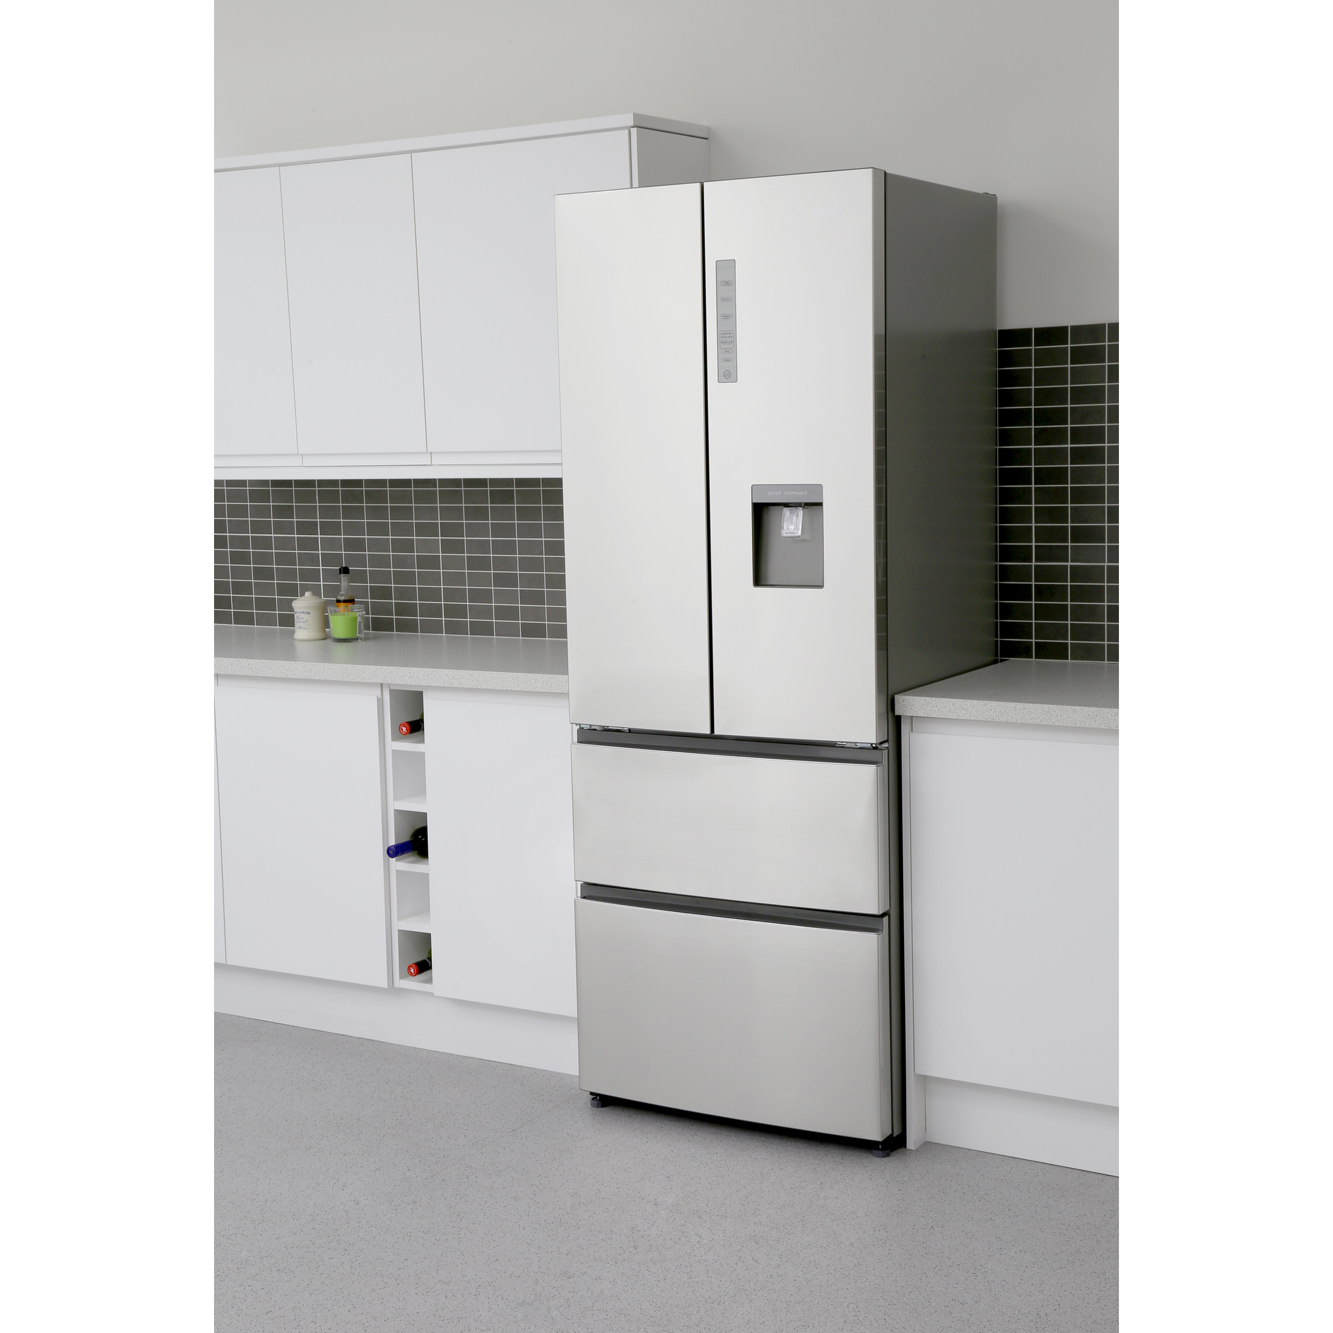 American Fridge Freezer With Drawers Part - 47: Haier B3FE742CMJW American Fridge Freezer